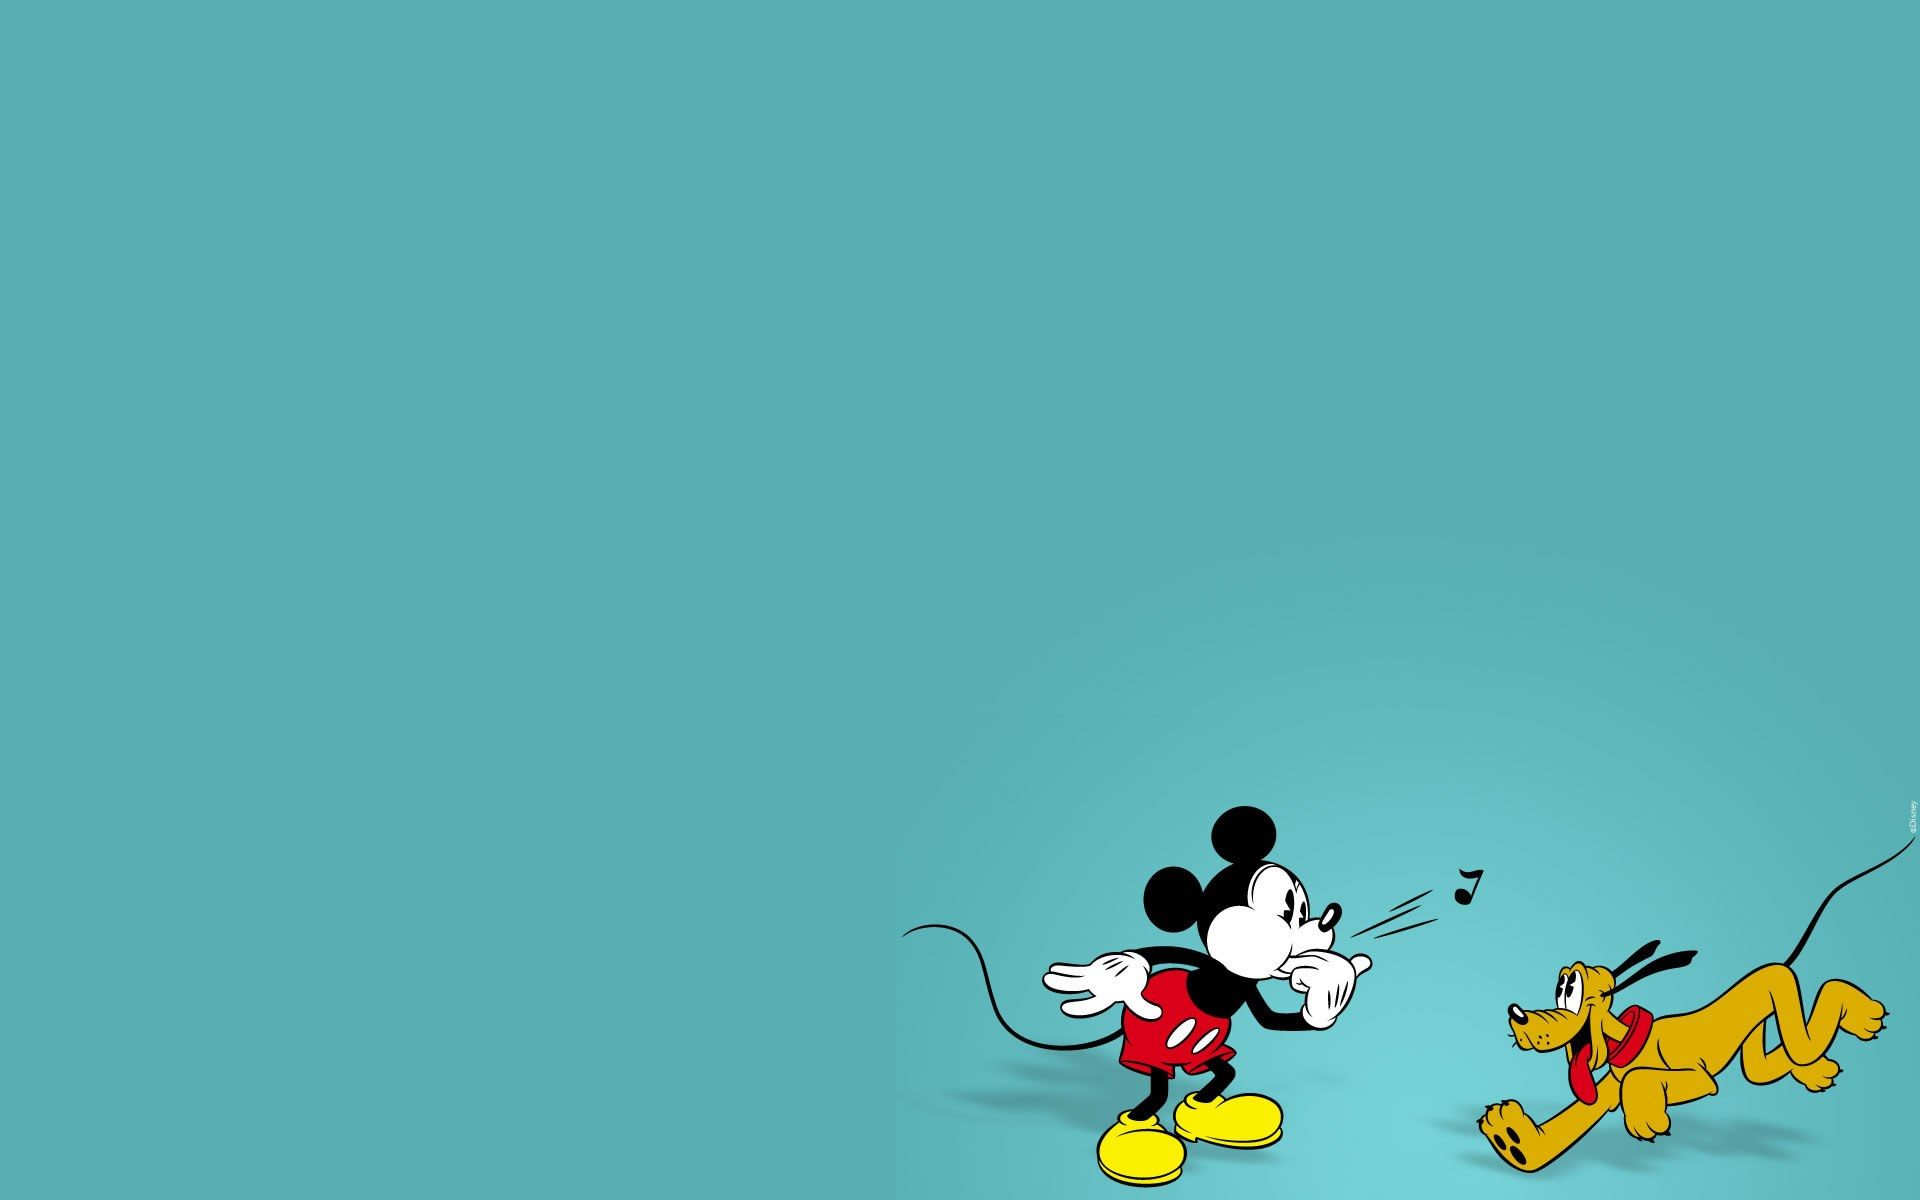 Mickey mouse wallpaper pc desktop 9637 wallpaper - Wallpapers pc ...